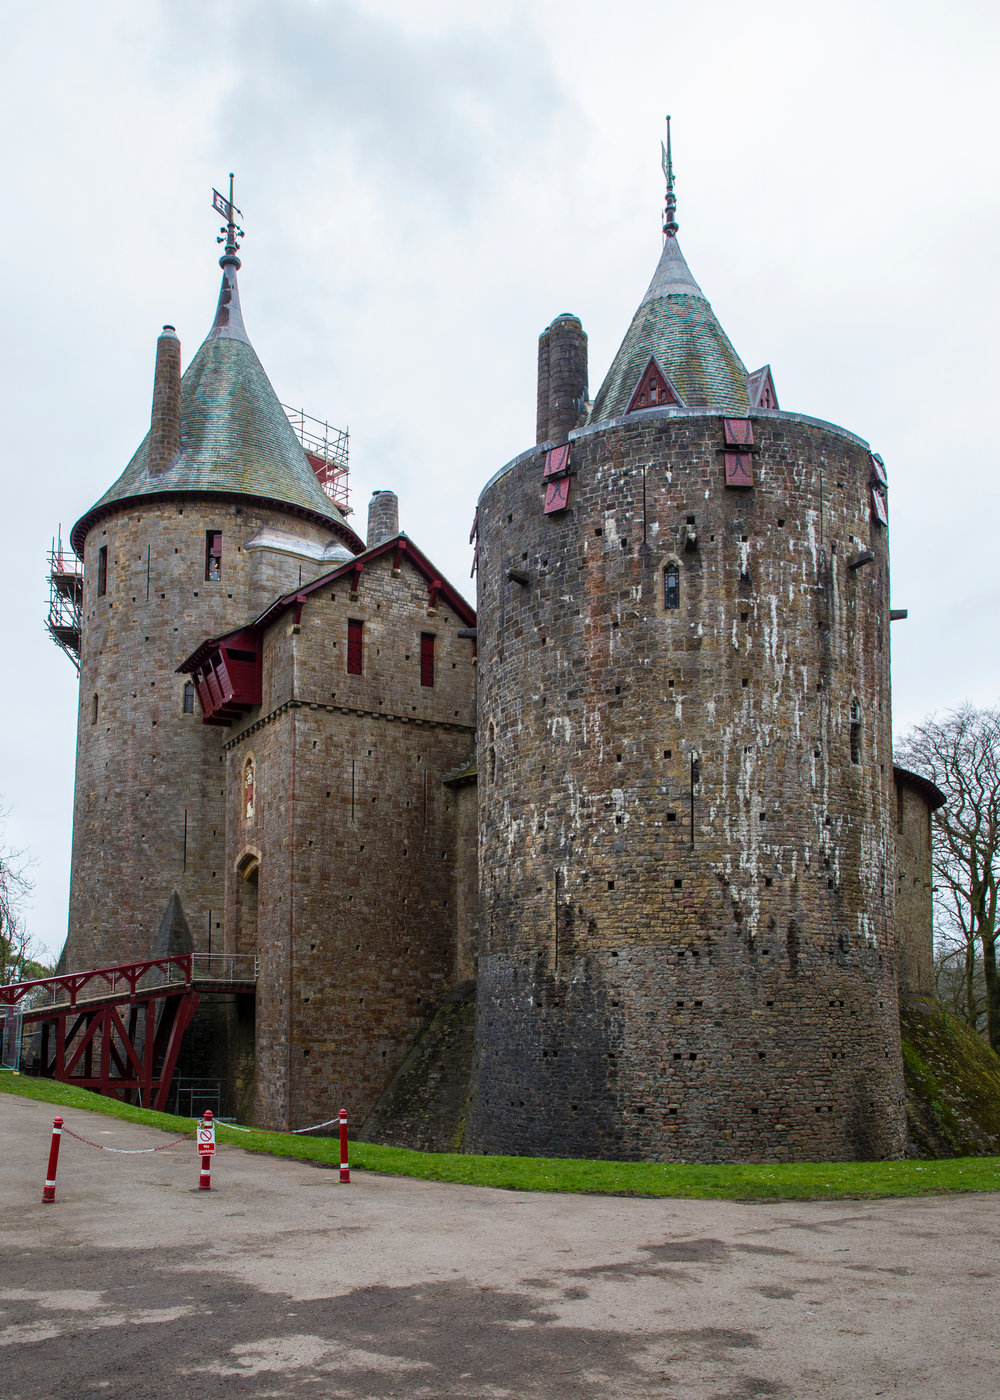 The outside view of Castell Coch